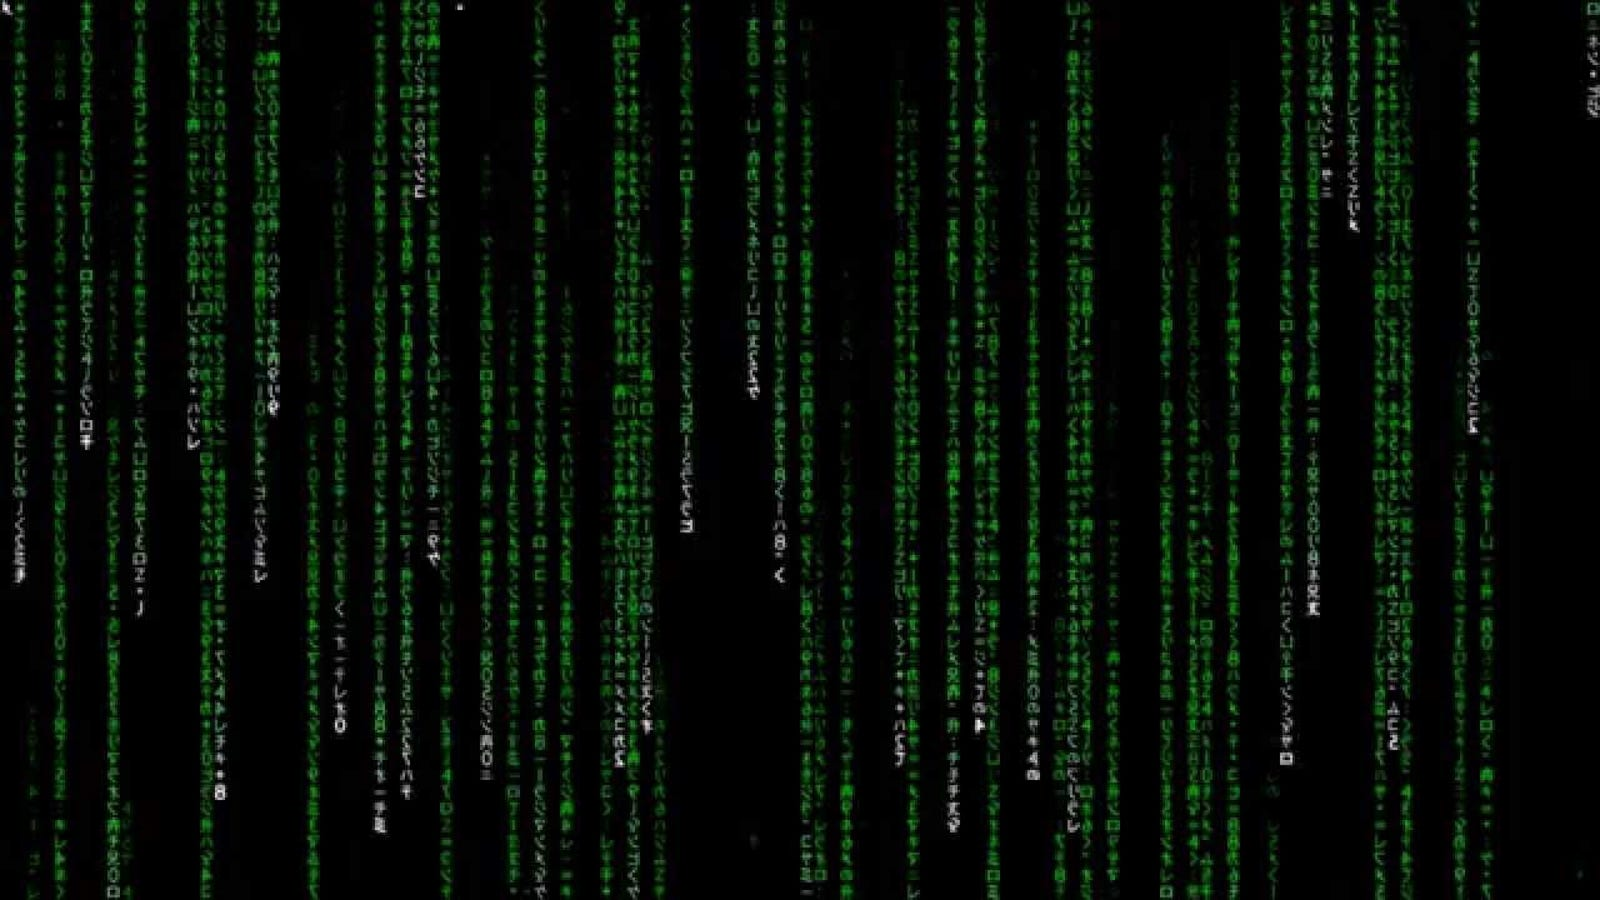 The Weird Green Code From Matrix Is Just A Bunch Of 4298626 Arduino 82158 Led It Turns Out Actually